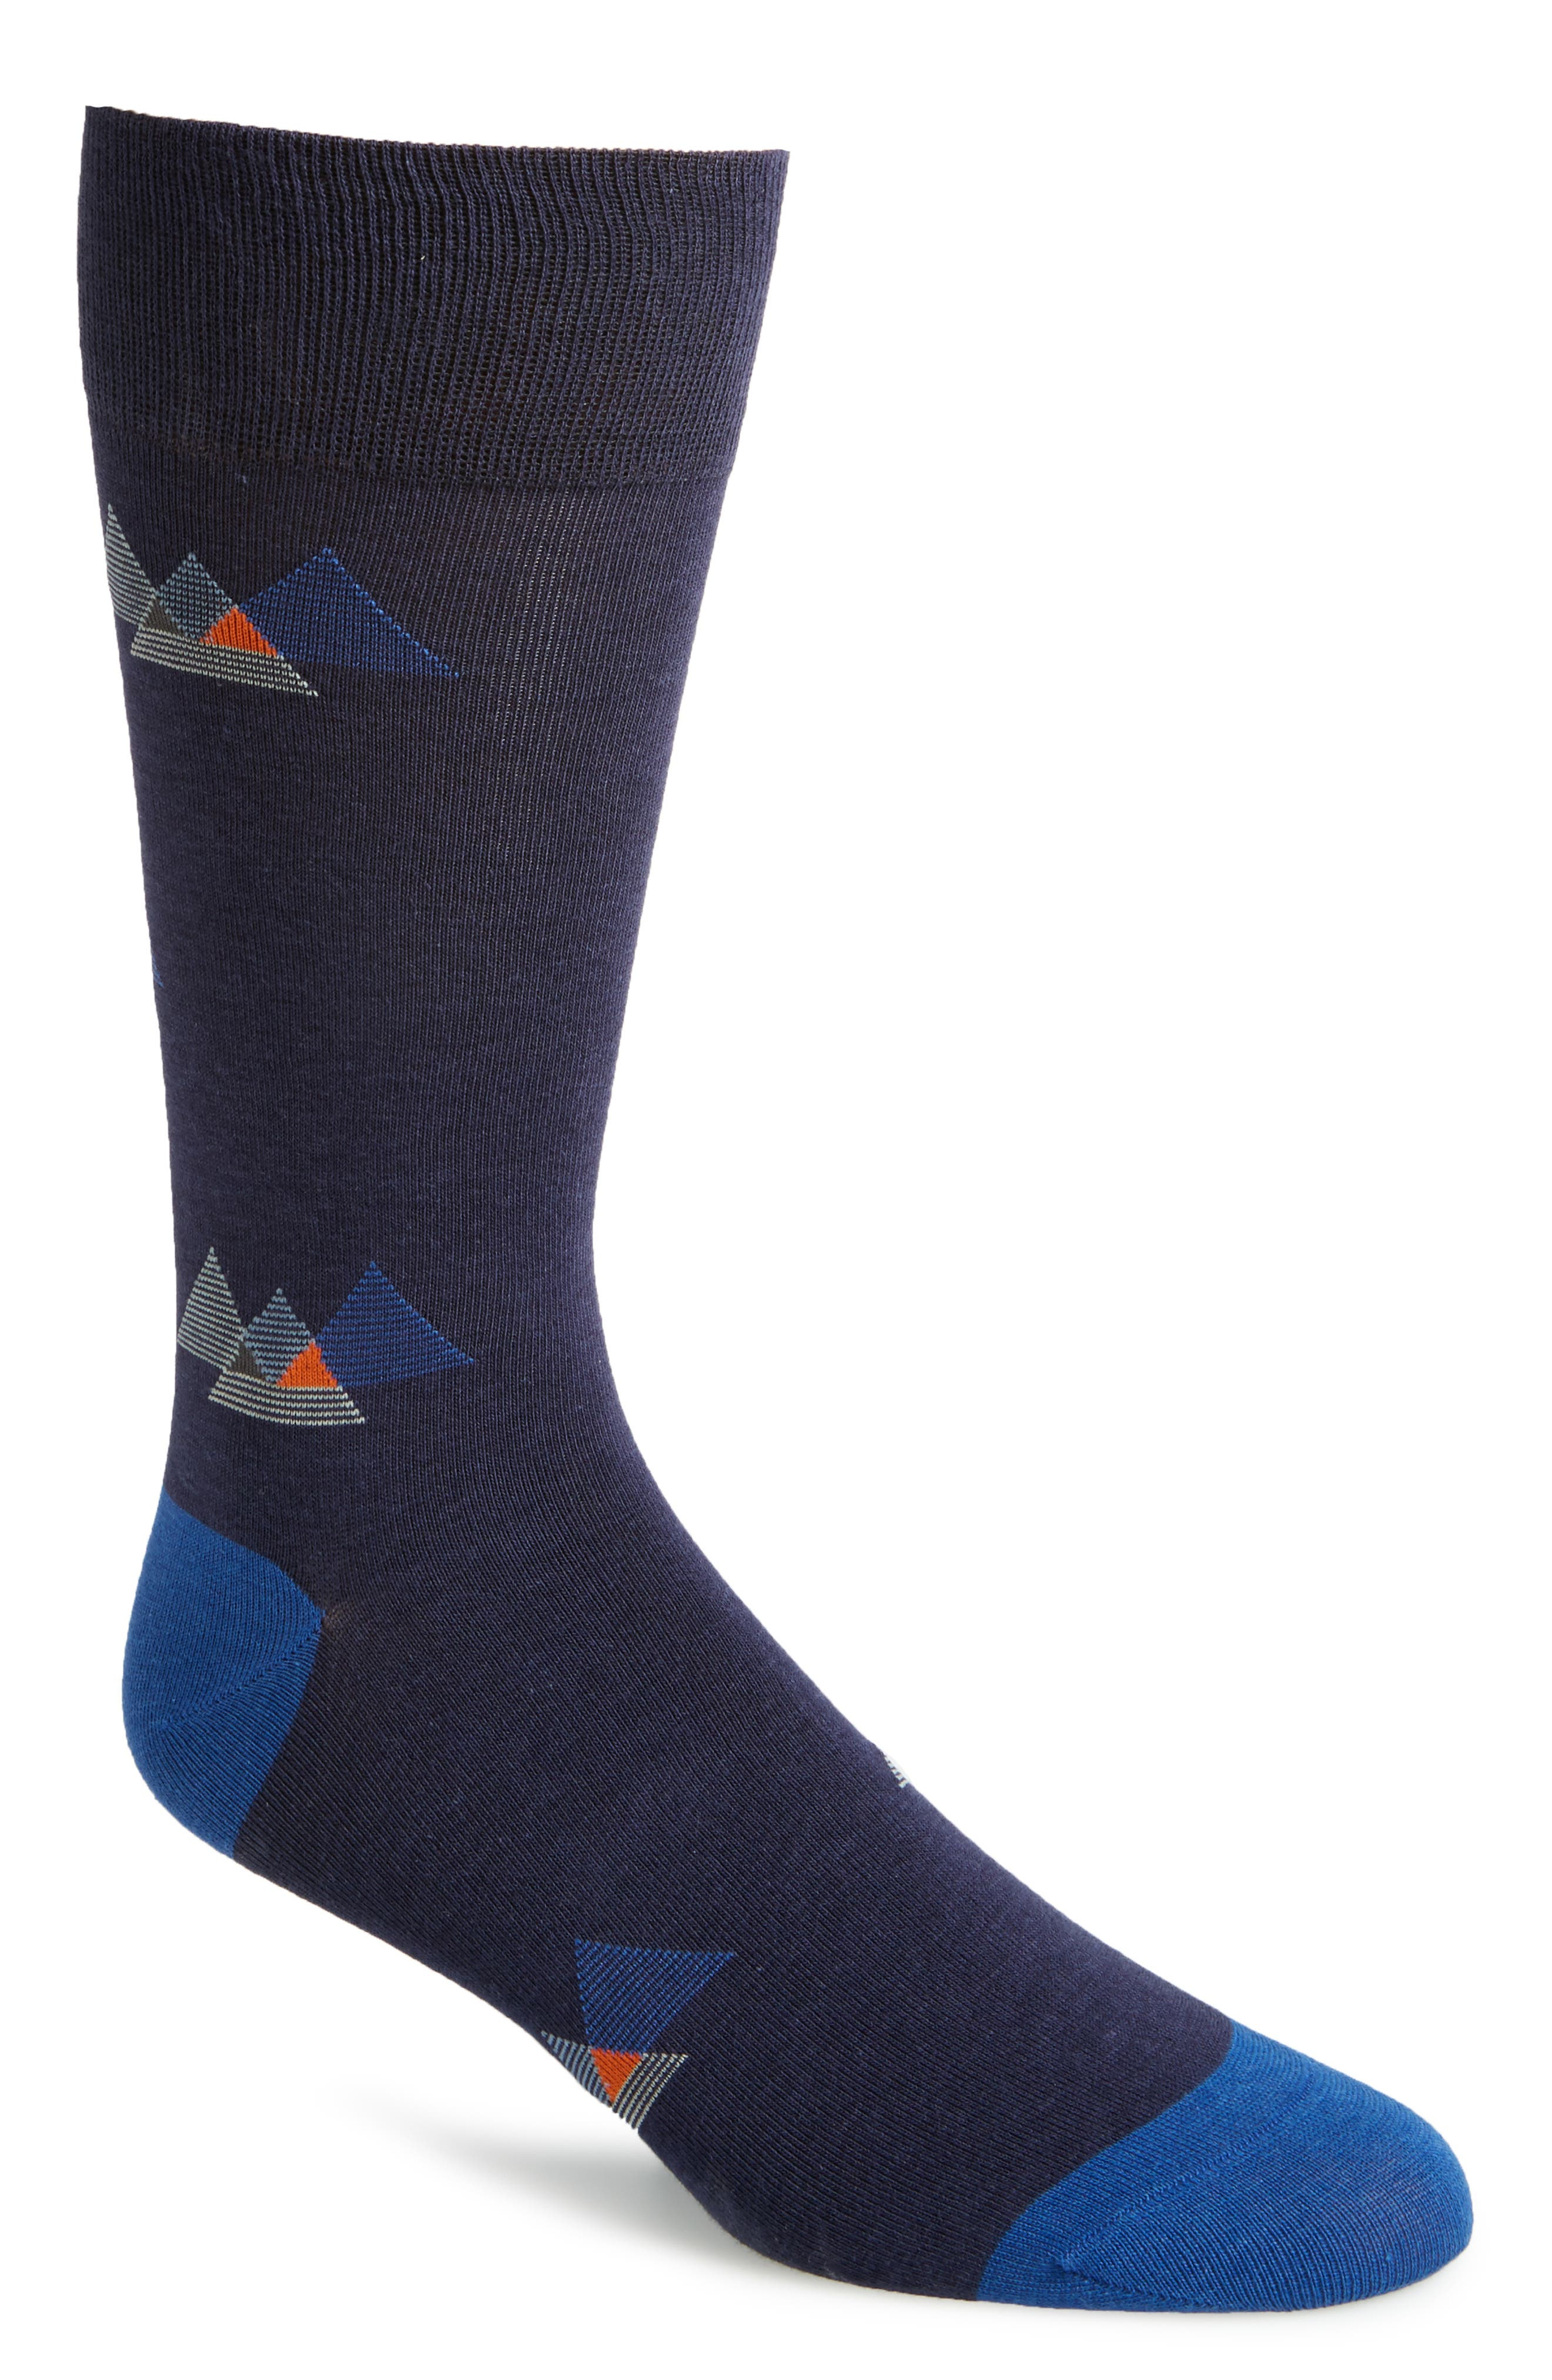 Alternate Image 1 Selected - Cole Haan Triangles Socks (3 for $30)